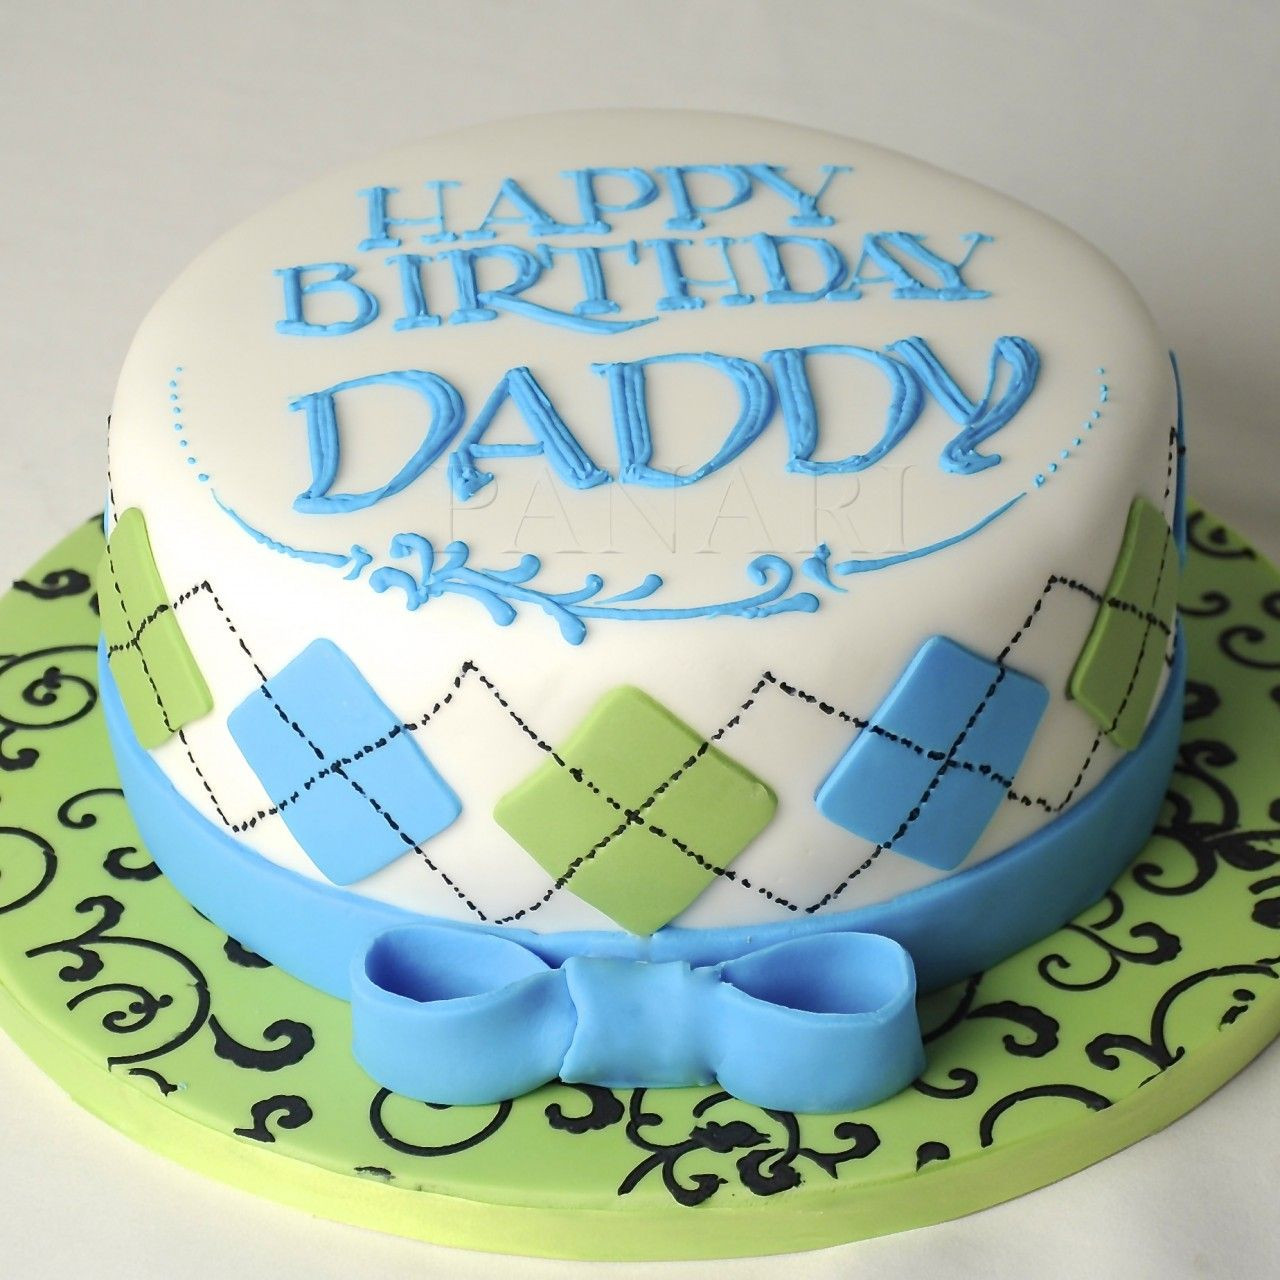 Best ideas about Happy Birthday Dad Cake . Save or Pin Argyle pattern cake cm0175 in 2019 CAkes Now.